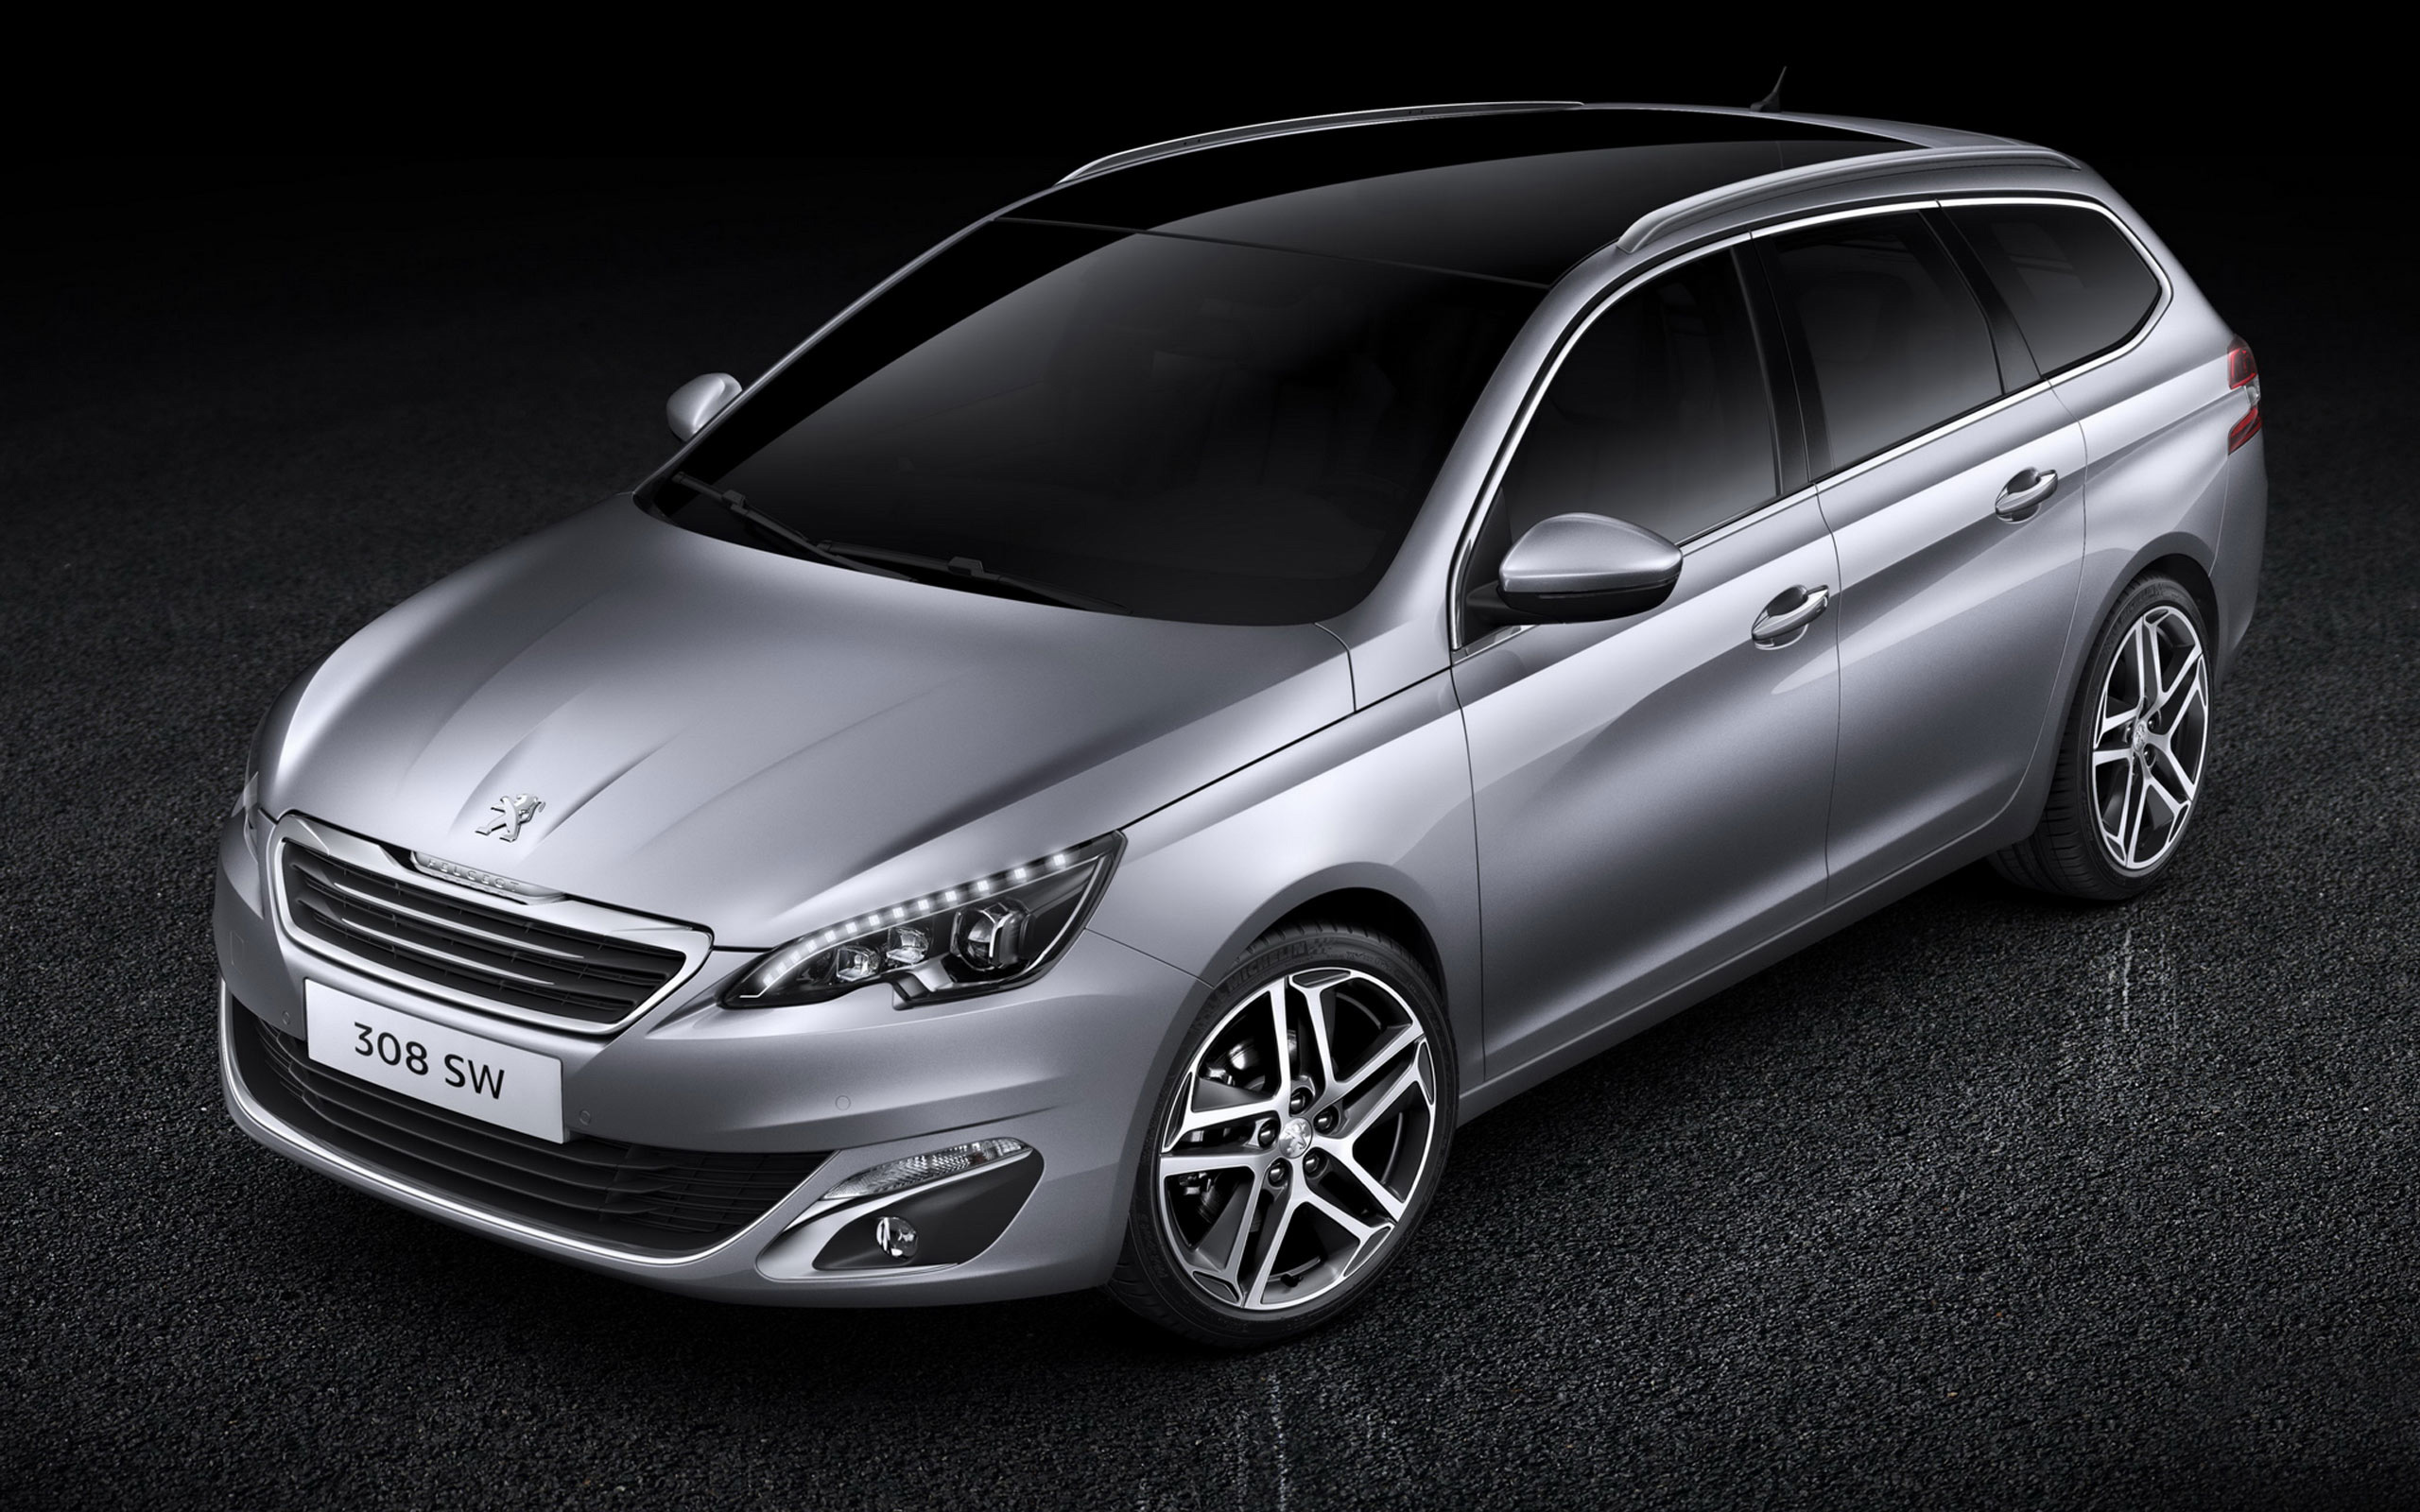 Peugeot 308 Sw 2014 Peugeot 308 Sw Wallpaper Hd Car Wallpapers Id 4024